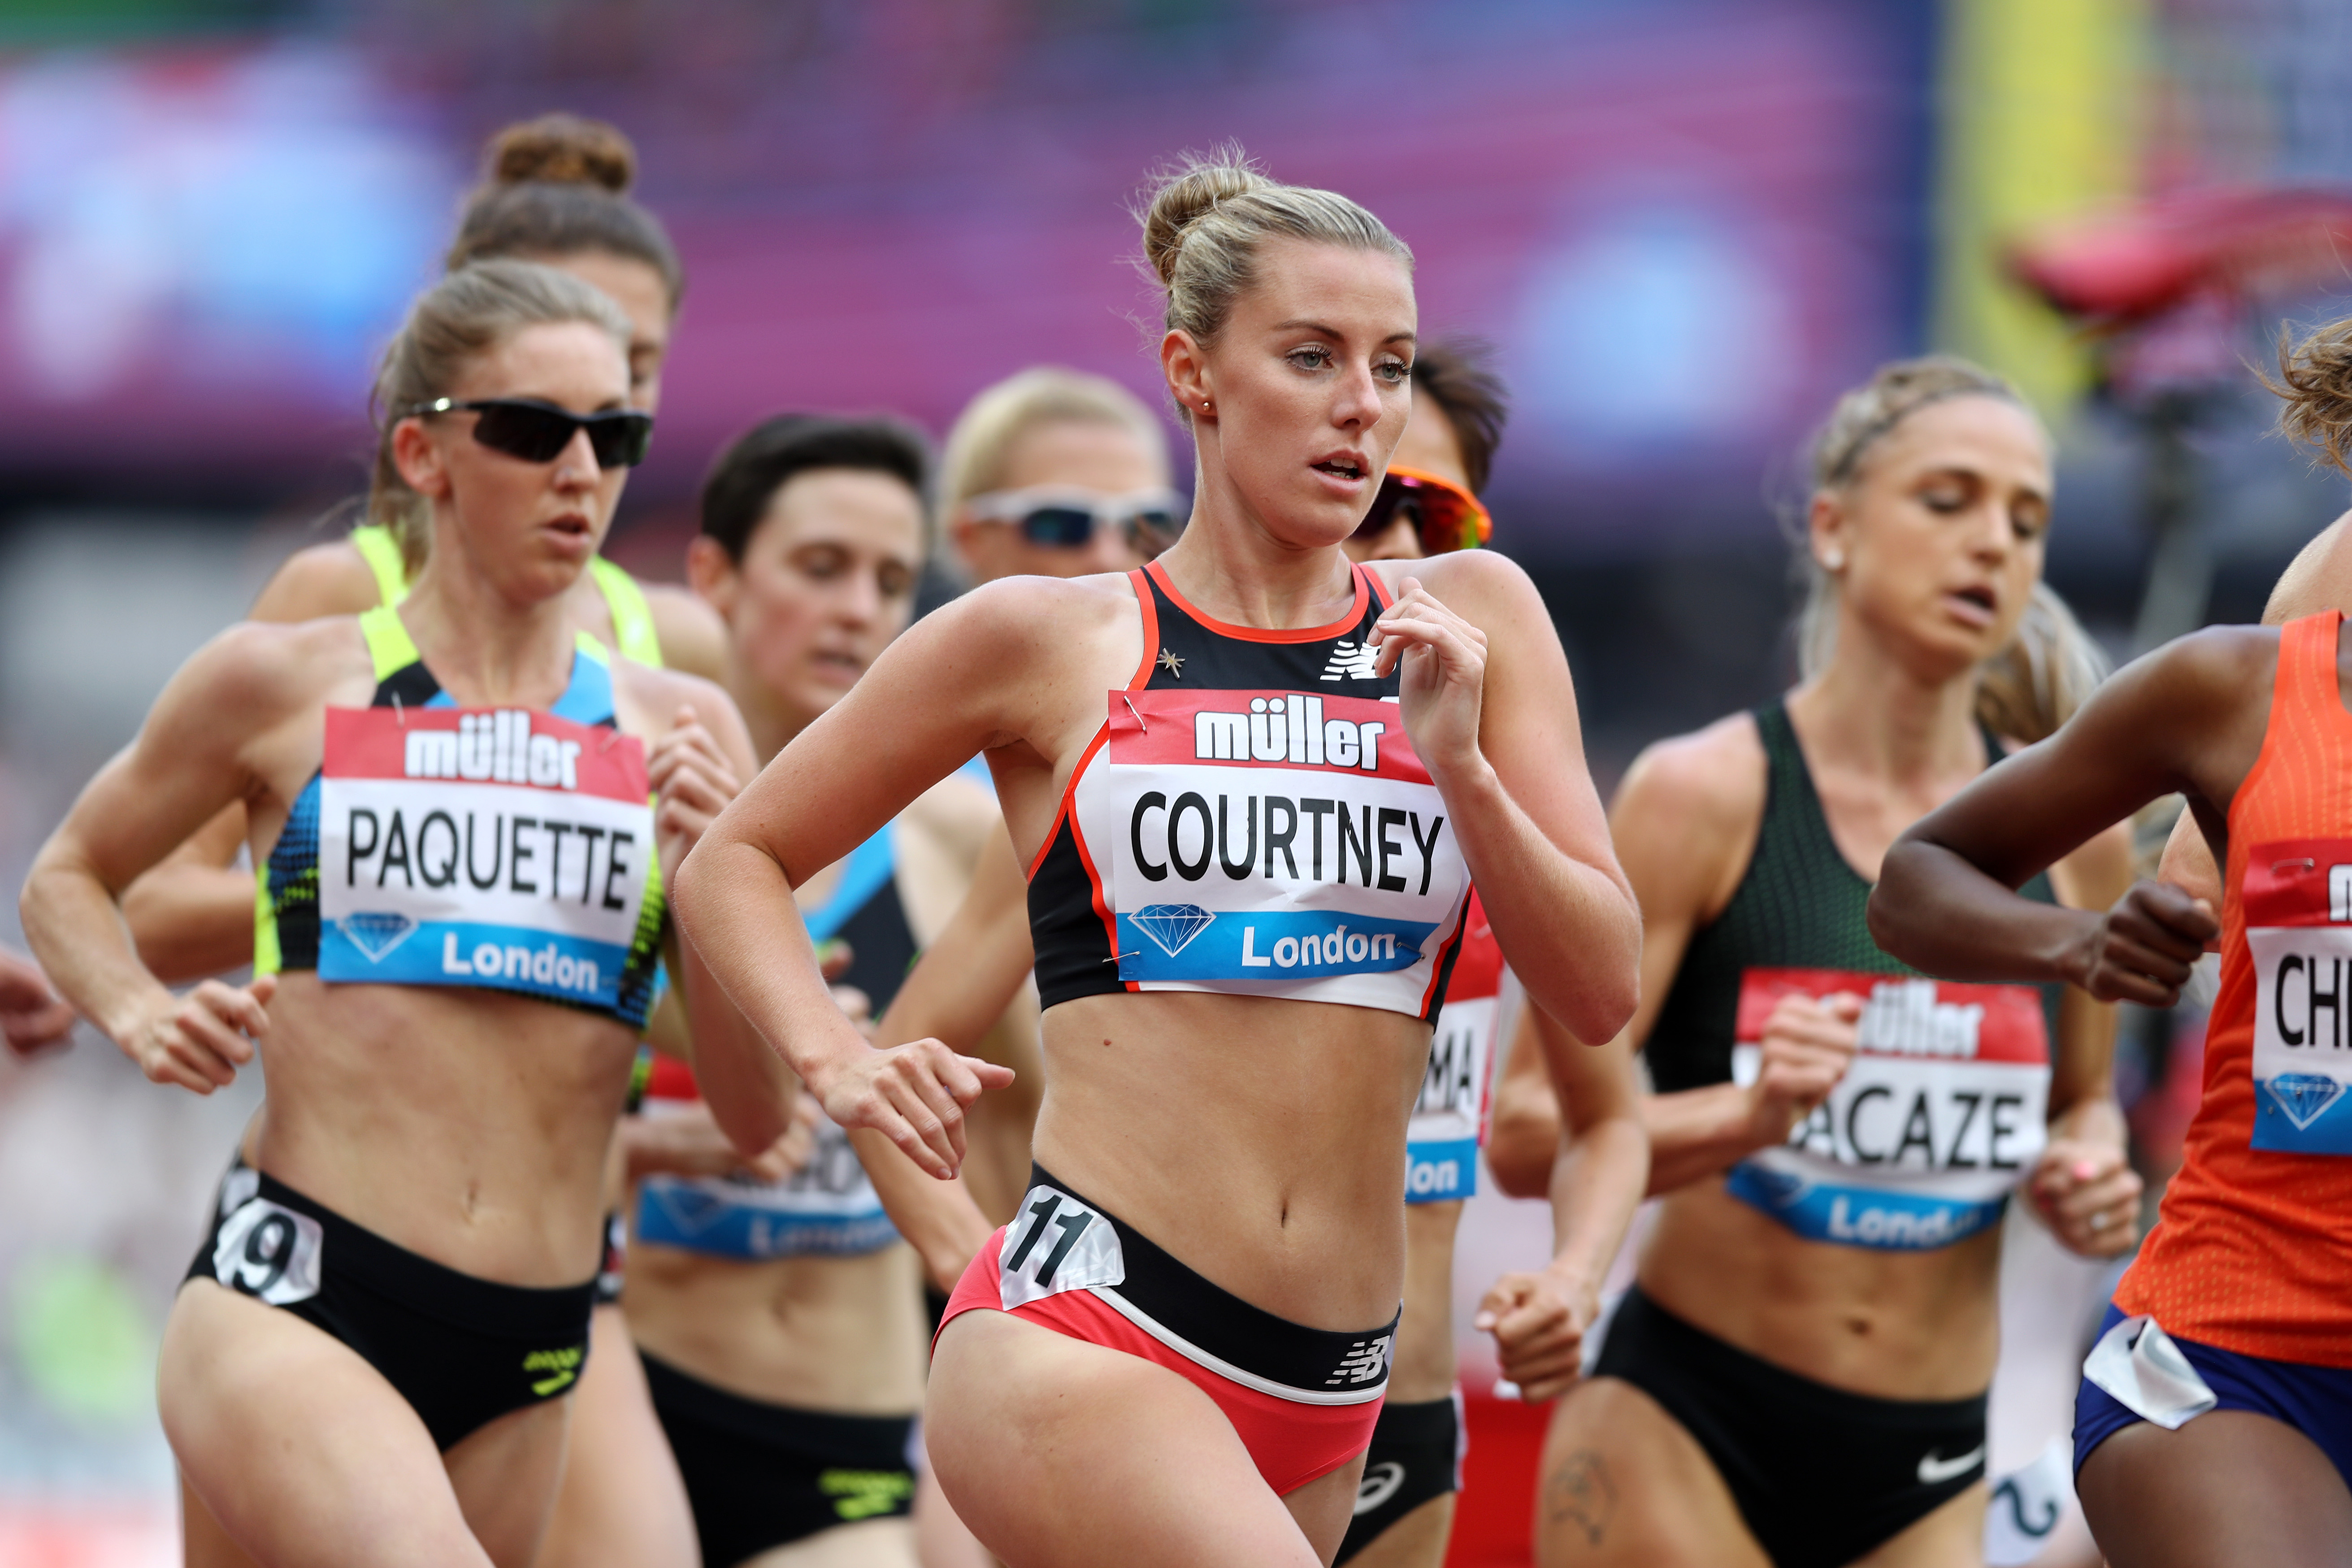 Courtney makes it count ahead of Glasgow 2019